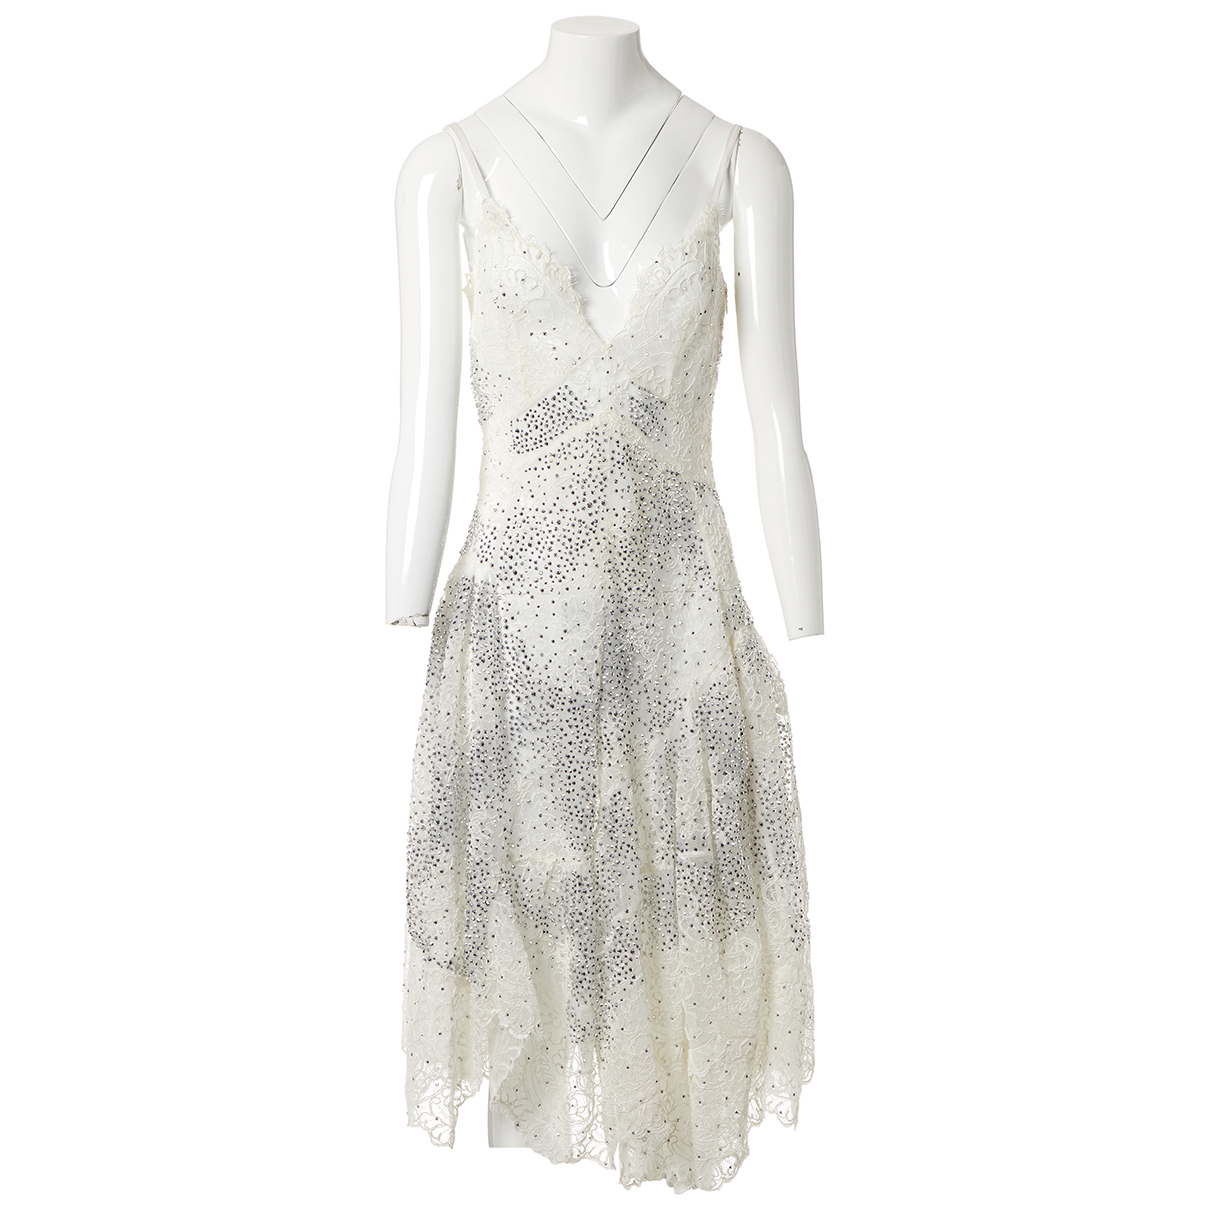 Ermanno Scervino N Ecru Lace dress for Women 40 IT